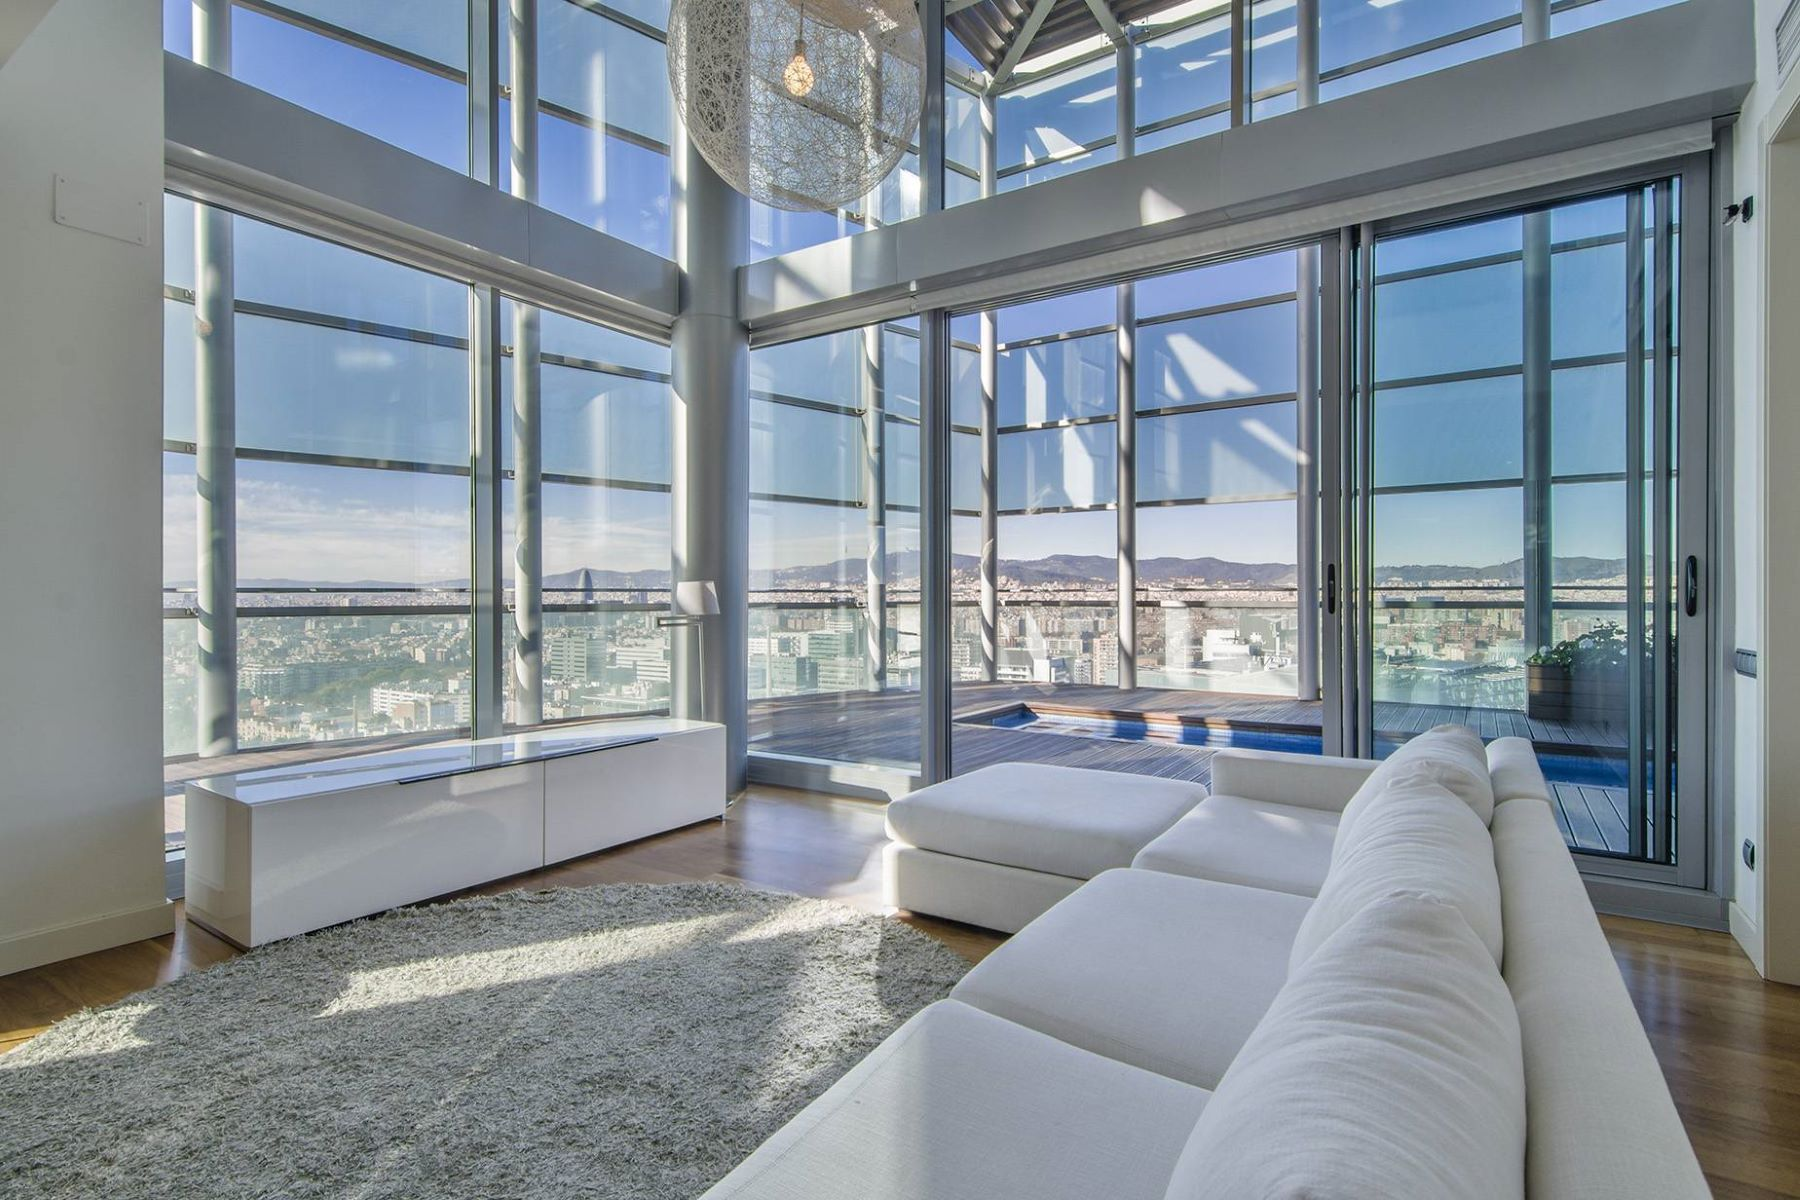 Appartamento per Vendita alle ore Exclusive Penthouse Duplex With Fantastic Views in Diagonal Mar, Barcelona Barcelona City, Barcellona, 08019 Spagna